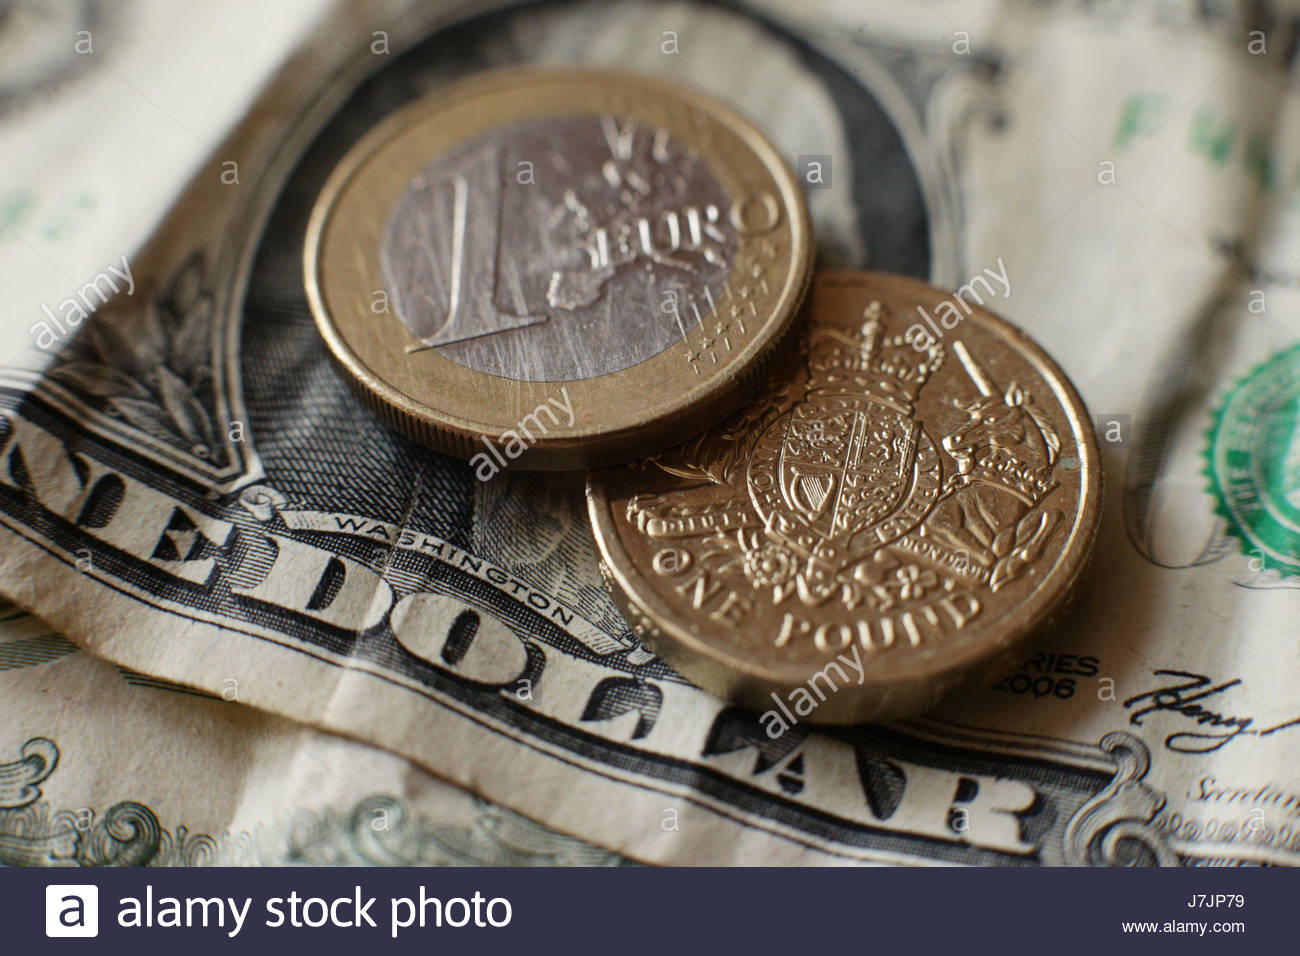 File Photo Dated 31 07 16 Of A British One Pound Coin Euro And US Dollar Bill The Continued Its Slide Against On